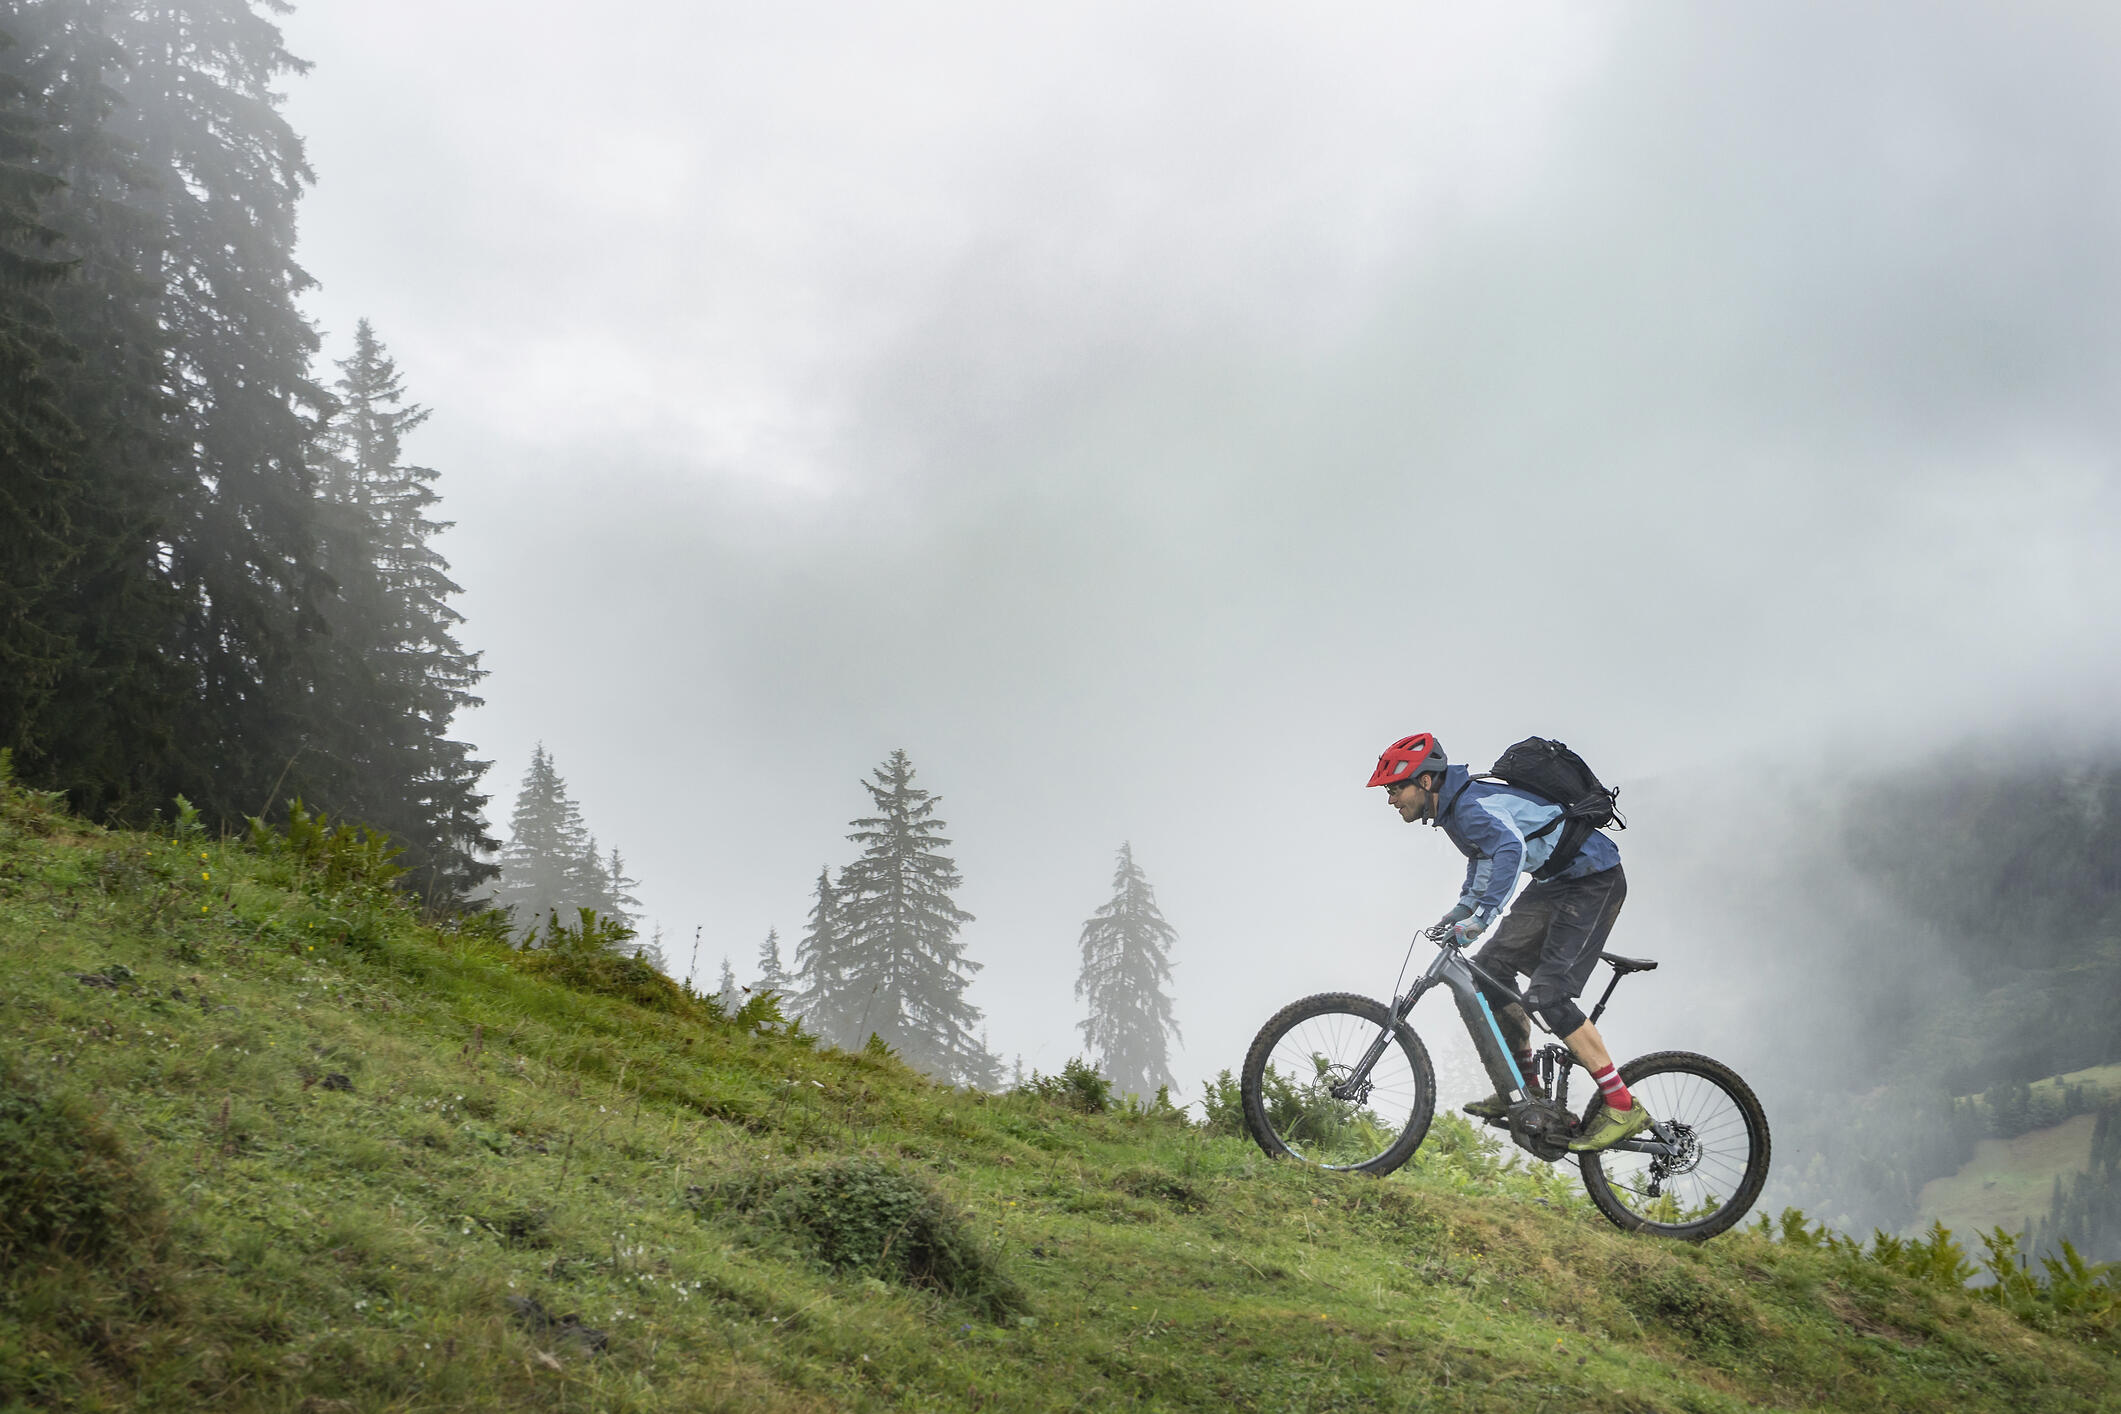 A man rides and e-bike up an incline on a mountain biking trail